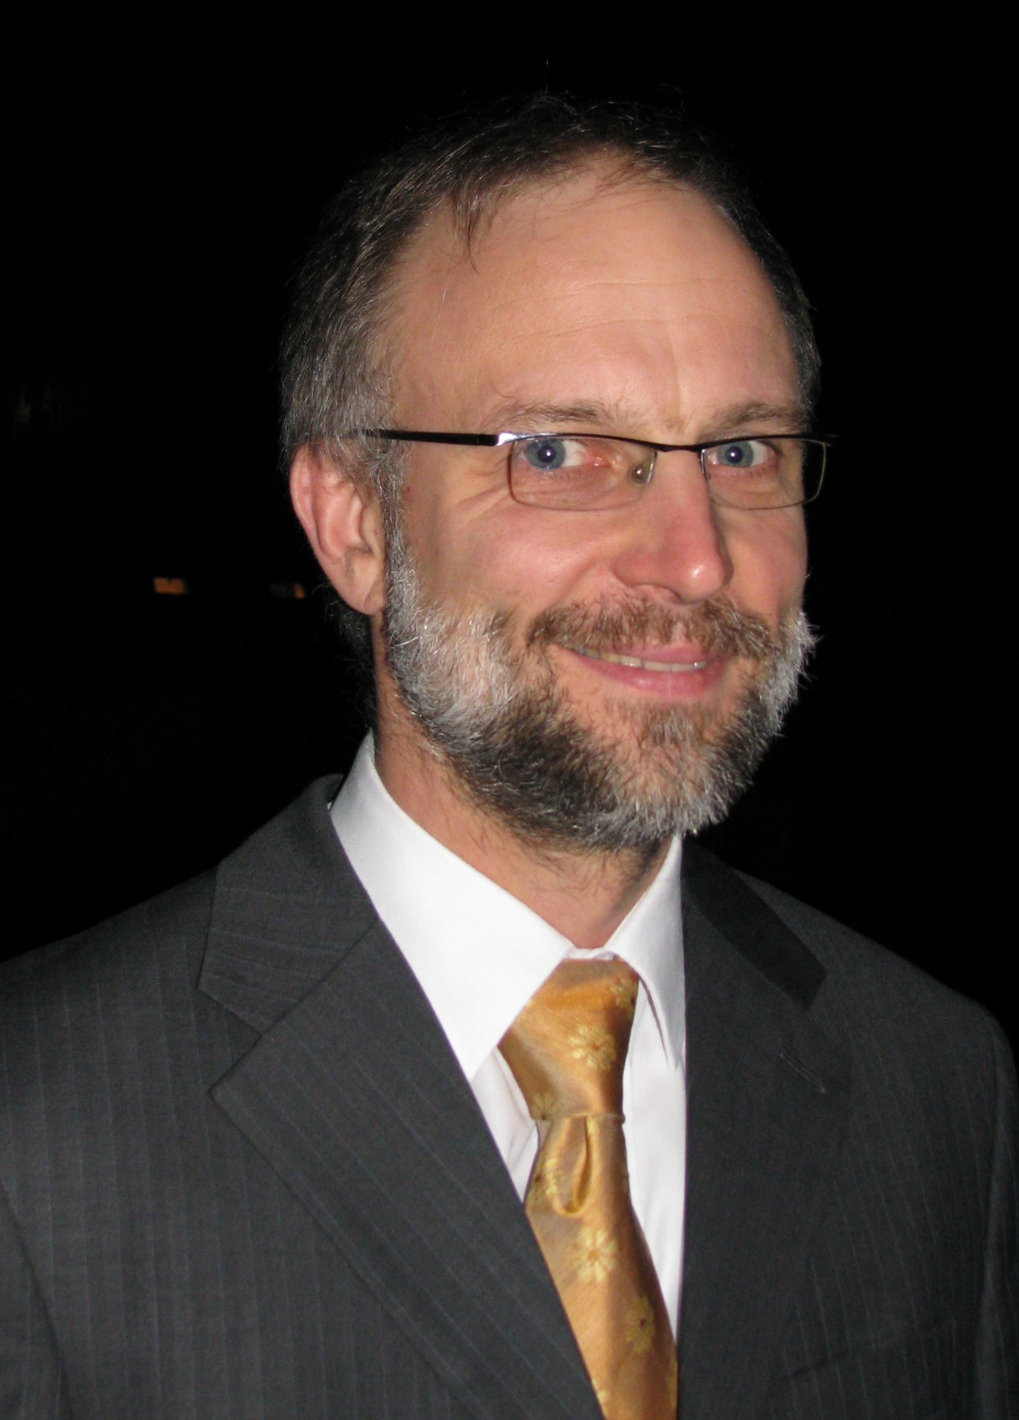 Prof. Dr. Tilman Pfau<br />Director of the 5<sup>th</sup> Physics Institute, University of Stuttgart <br /><br />Quantum Correlations and Ultra Cold Atoms